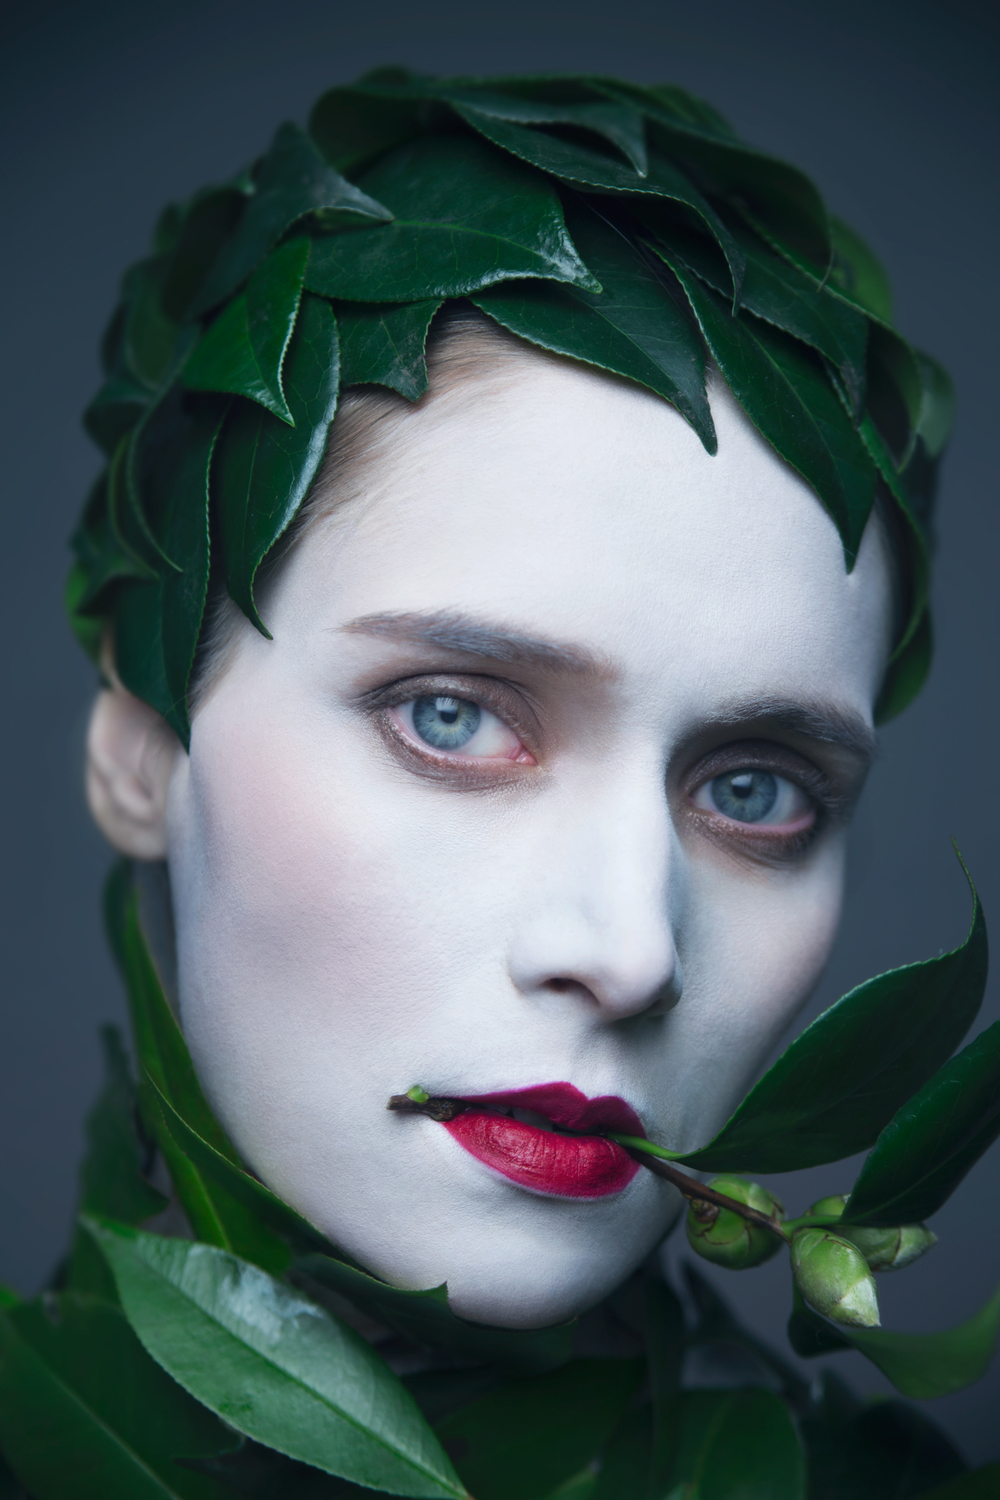 GREEN FANTASY MODEL   Marina MAKEUP   Ryan Han